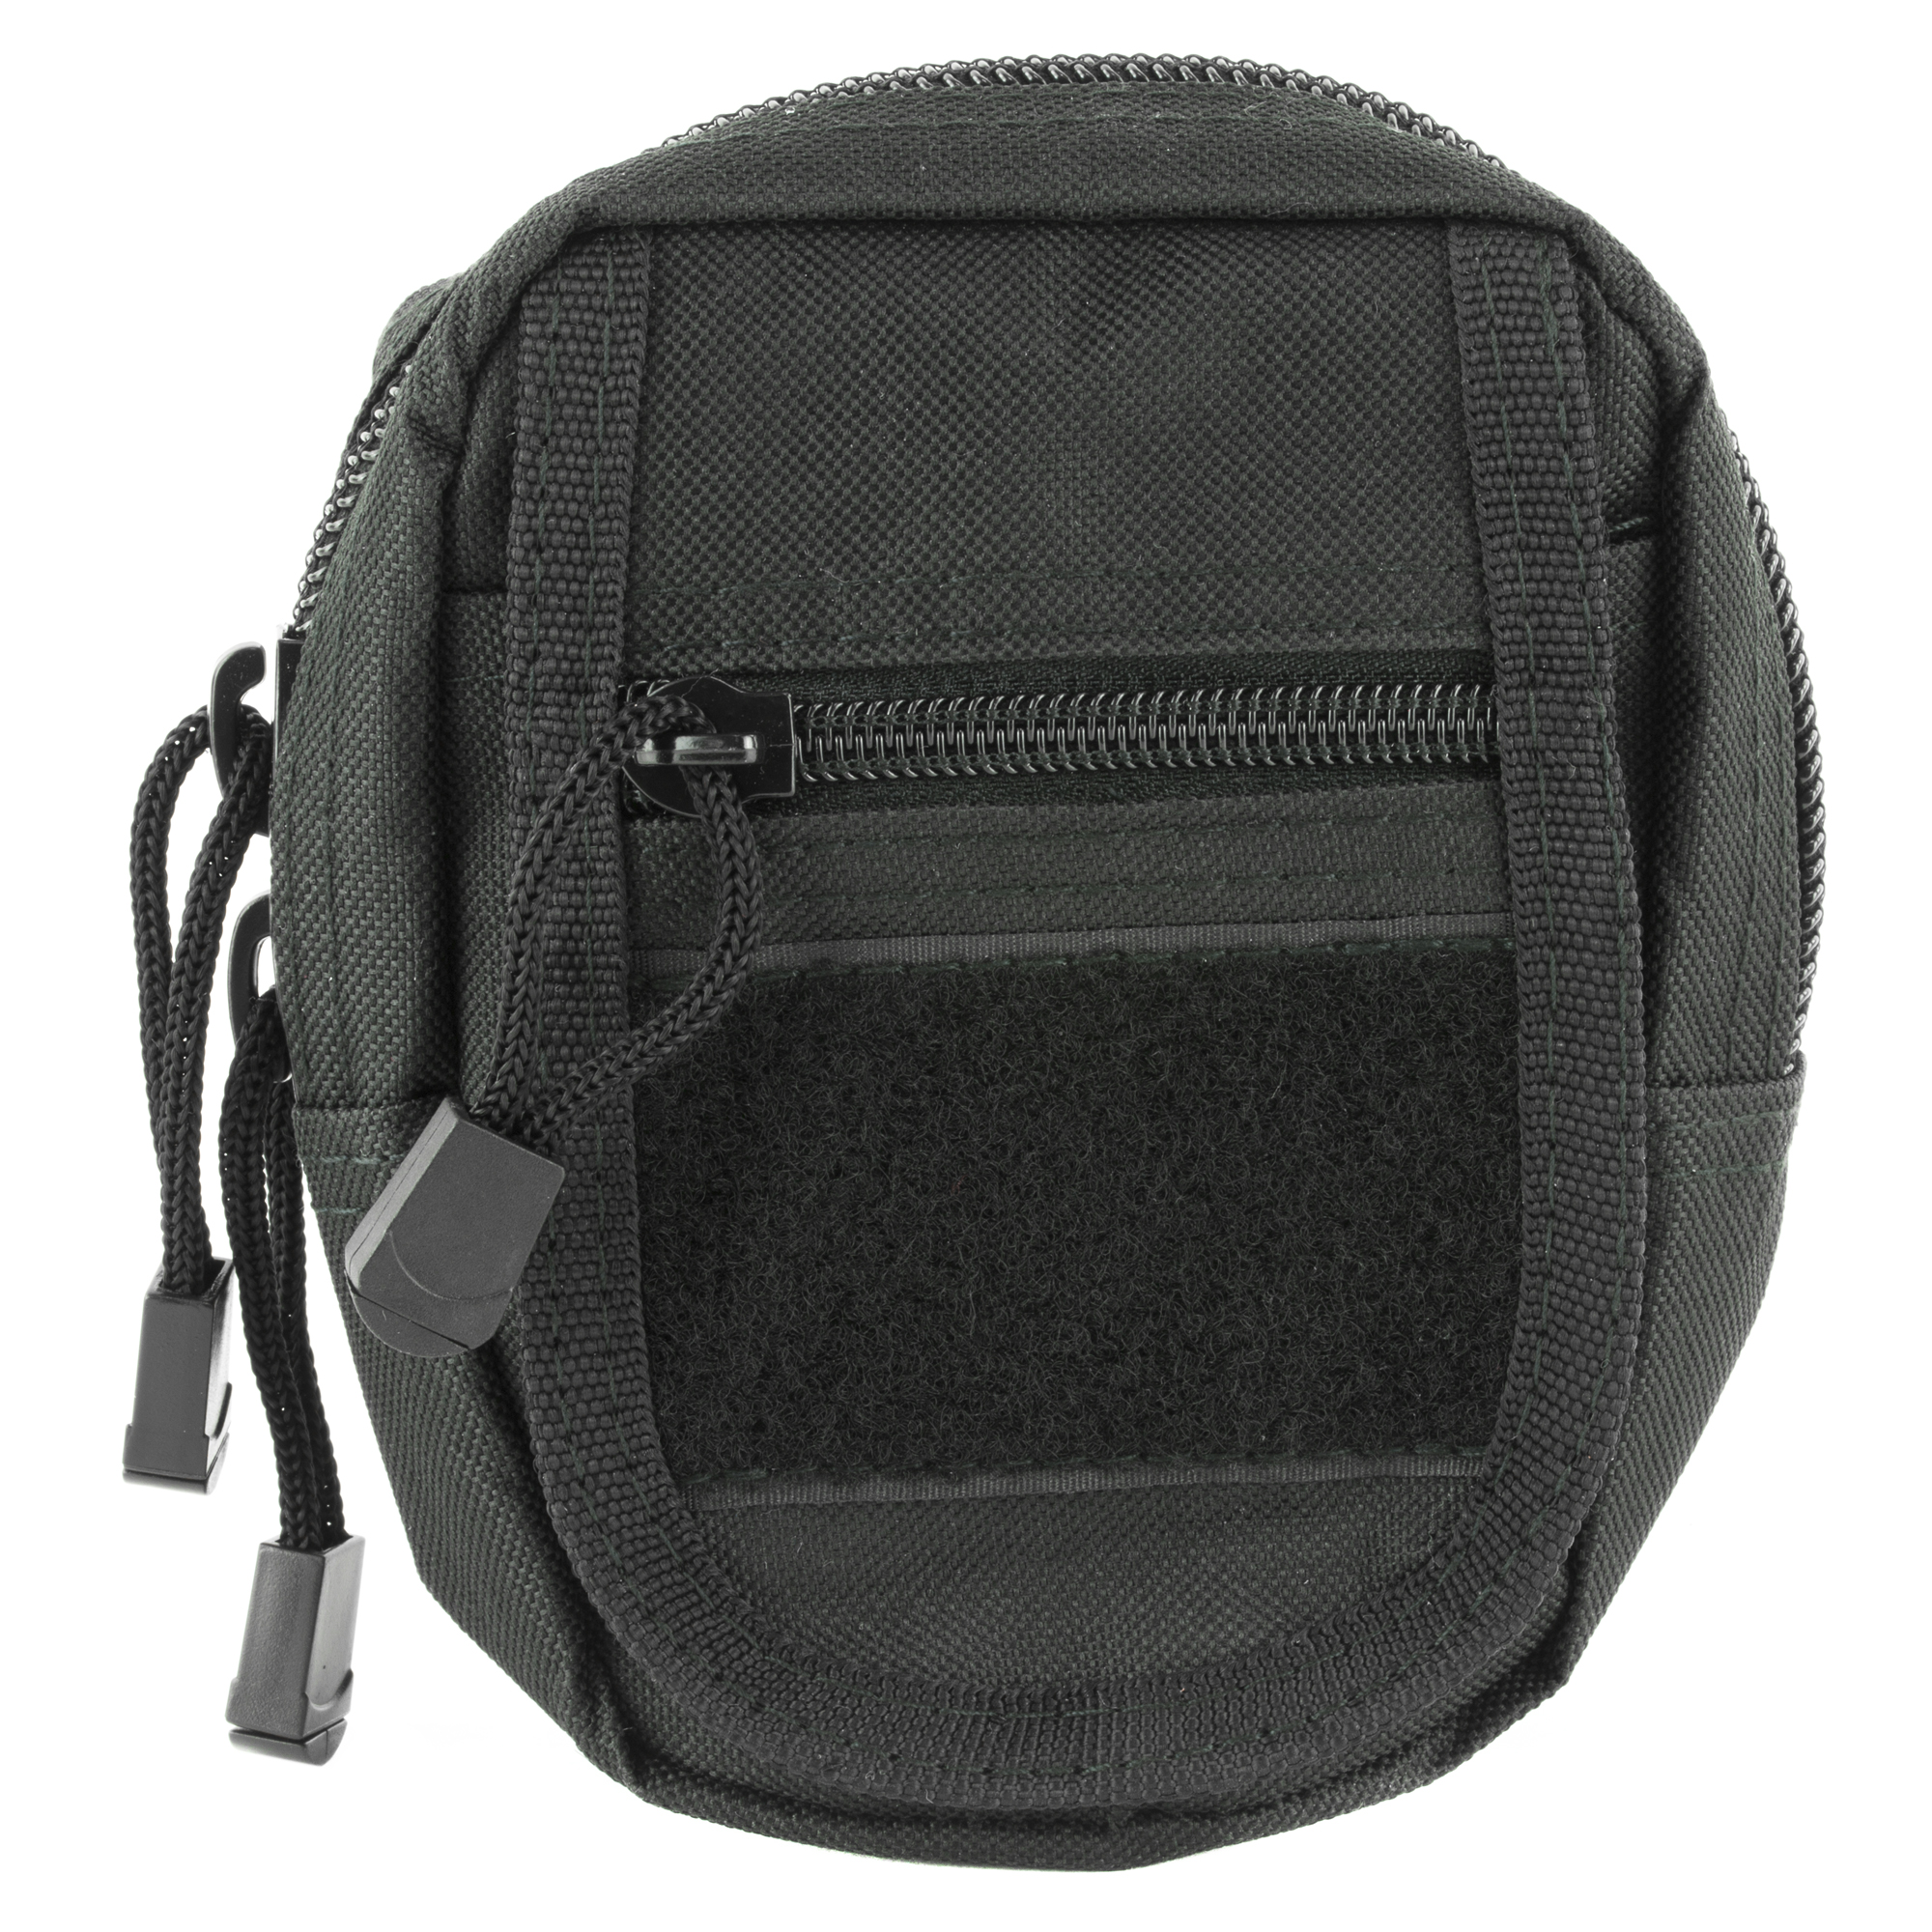 NCSTAR Small Utility Pouch Nylon – Black